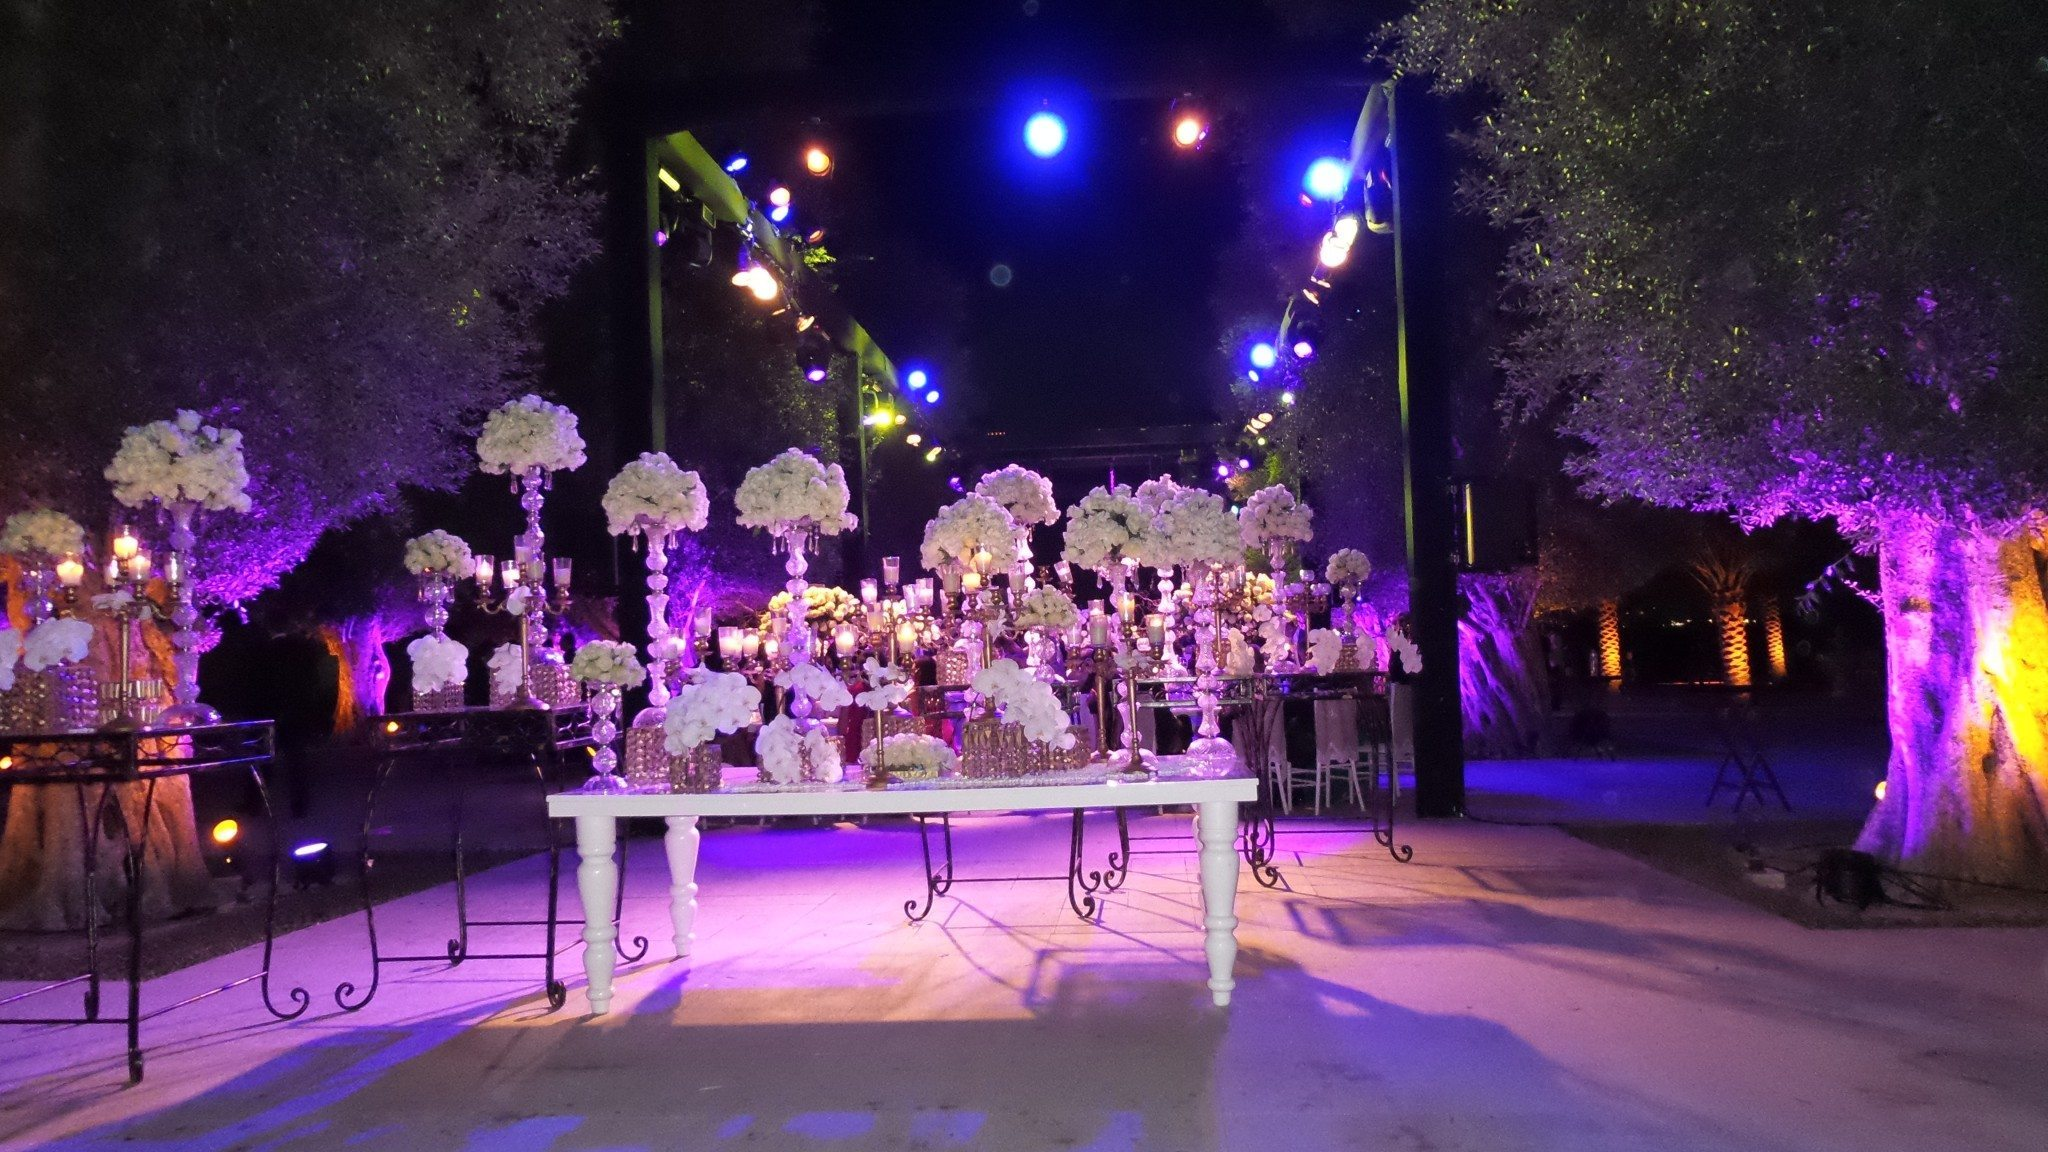 Desert palm hotel dubai wedding